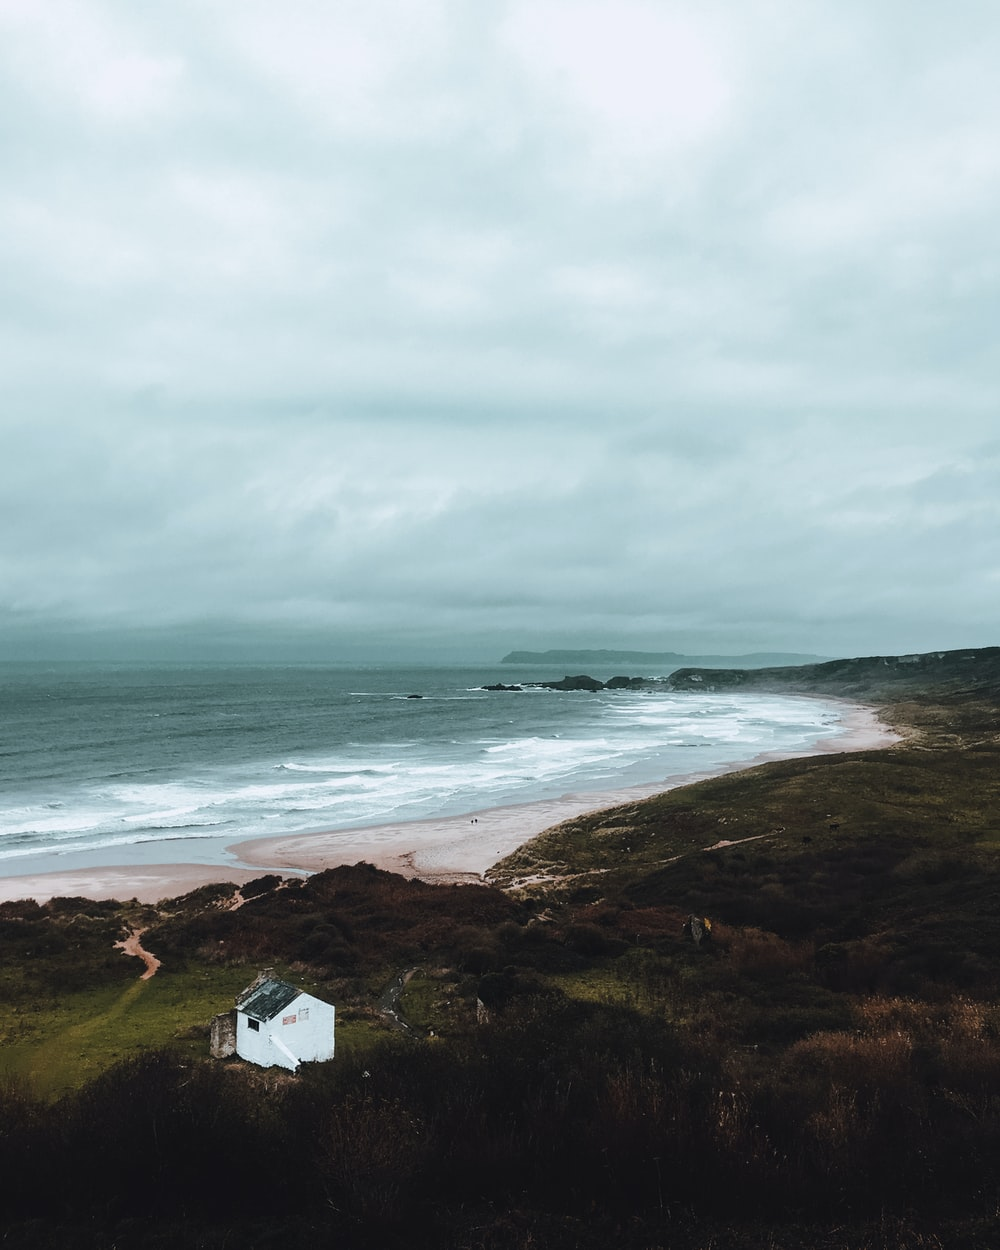 aerial view photography of house with ocean background